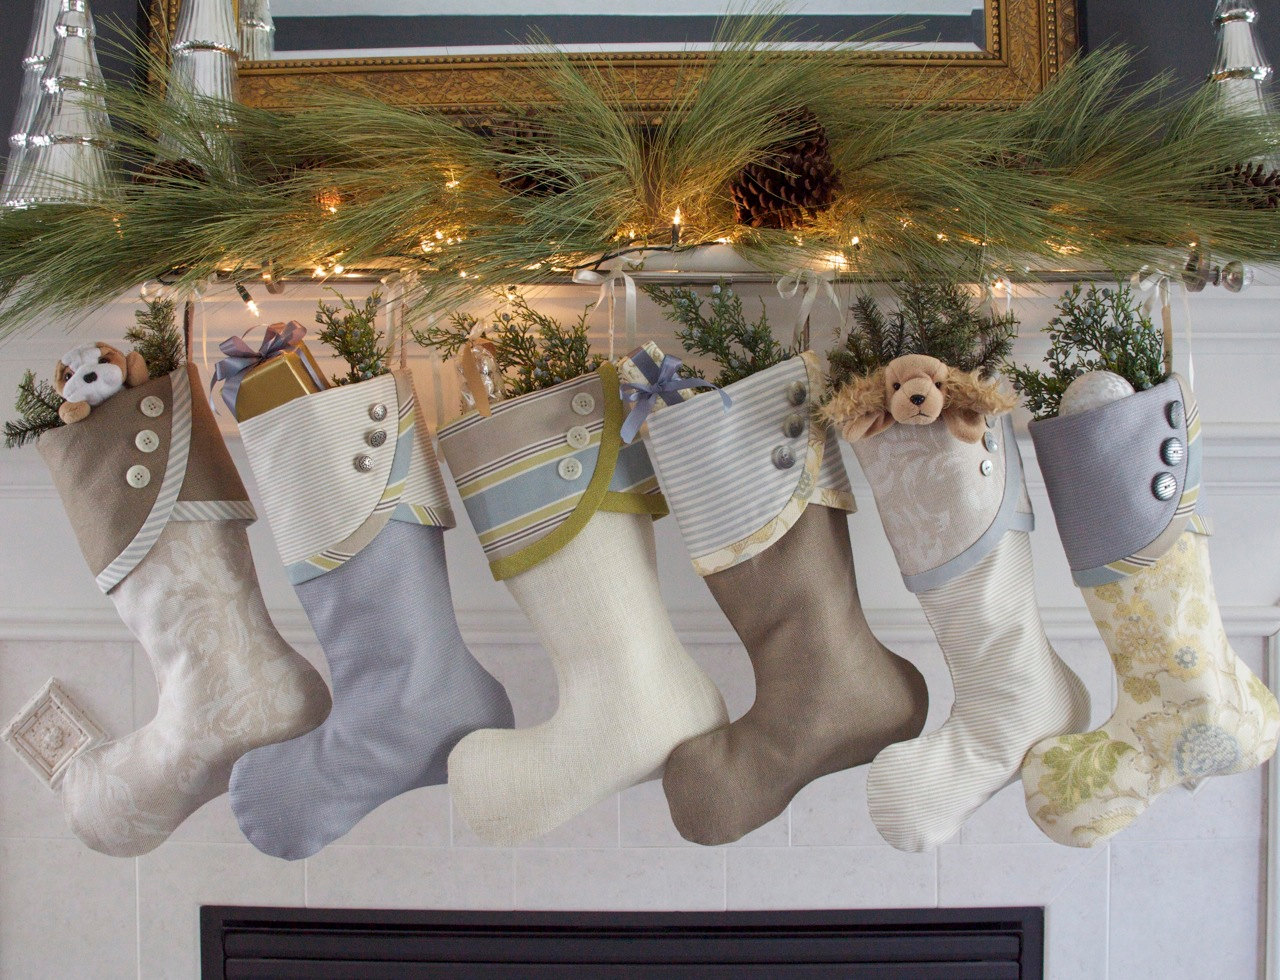 Personalized Dog Stockings Christmas